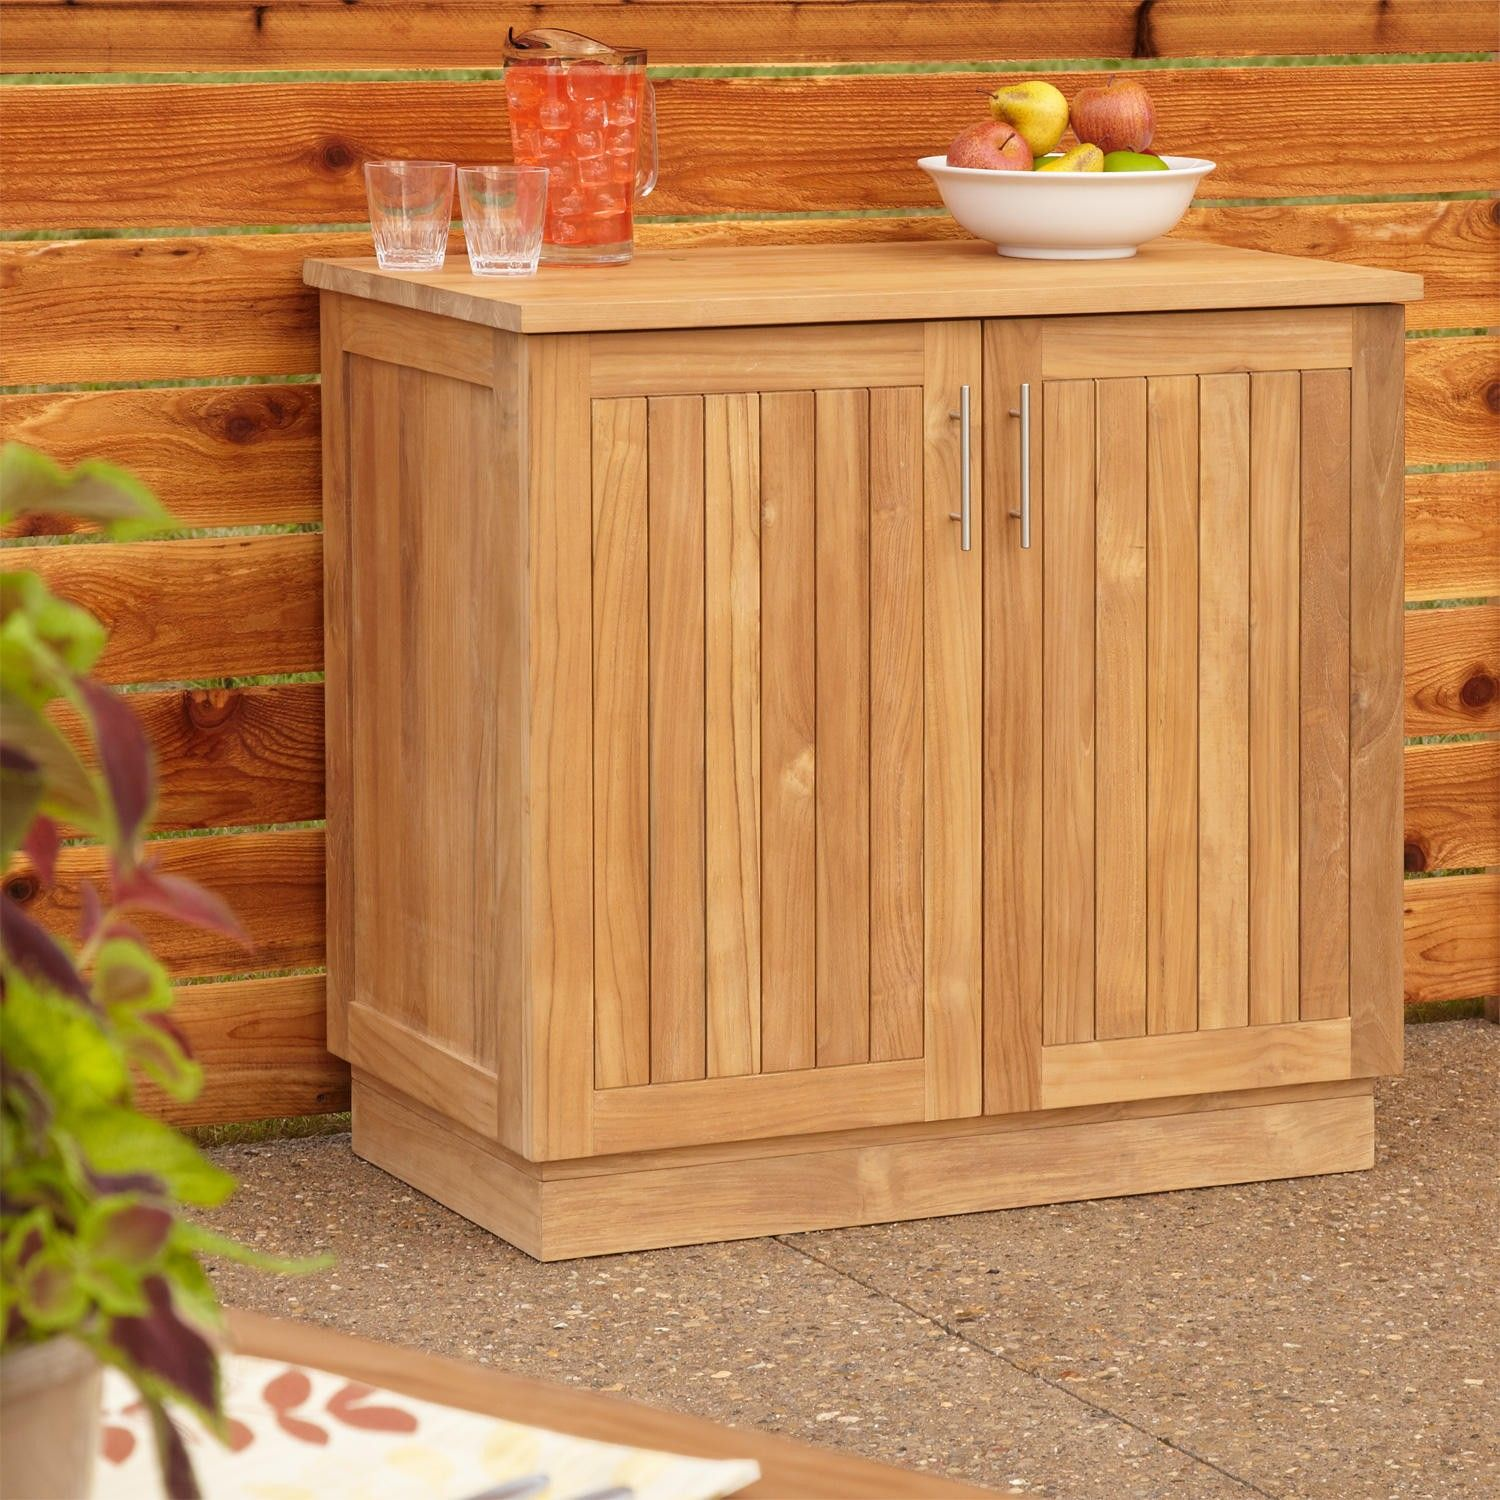 1000+ Images About Outdoor Furniture On Pinterest | Teak, Storage And  Outdoor Buffet